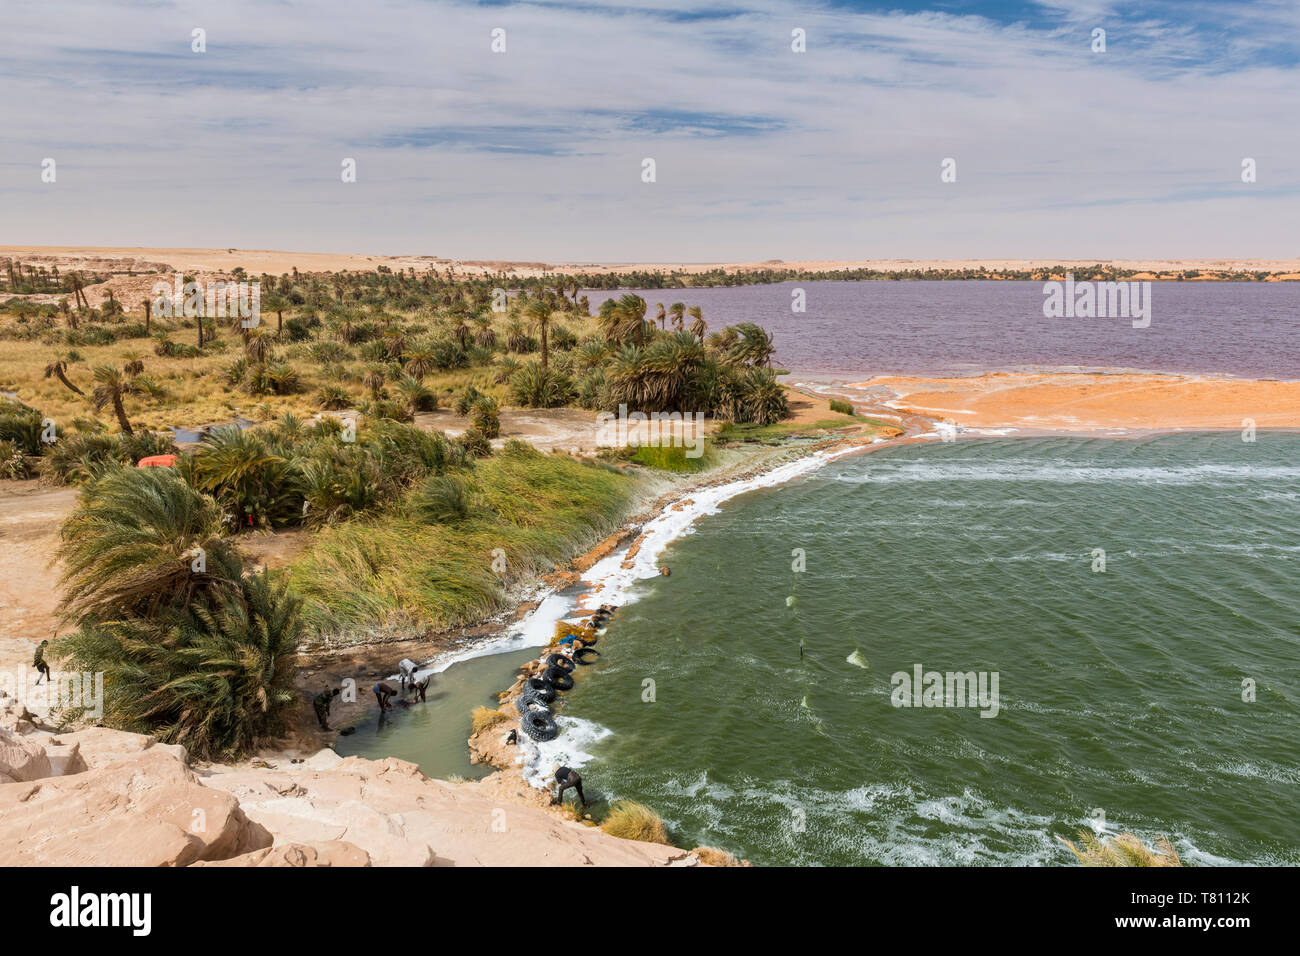 Two coloured lake, part of the Ounianga lakes, UNESCO World Heritage Site, northern Chad, Africa - Stock Image